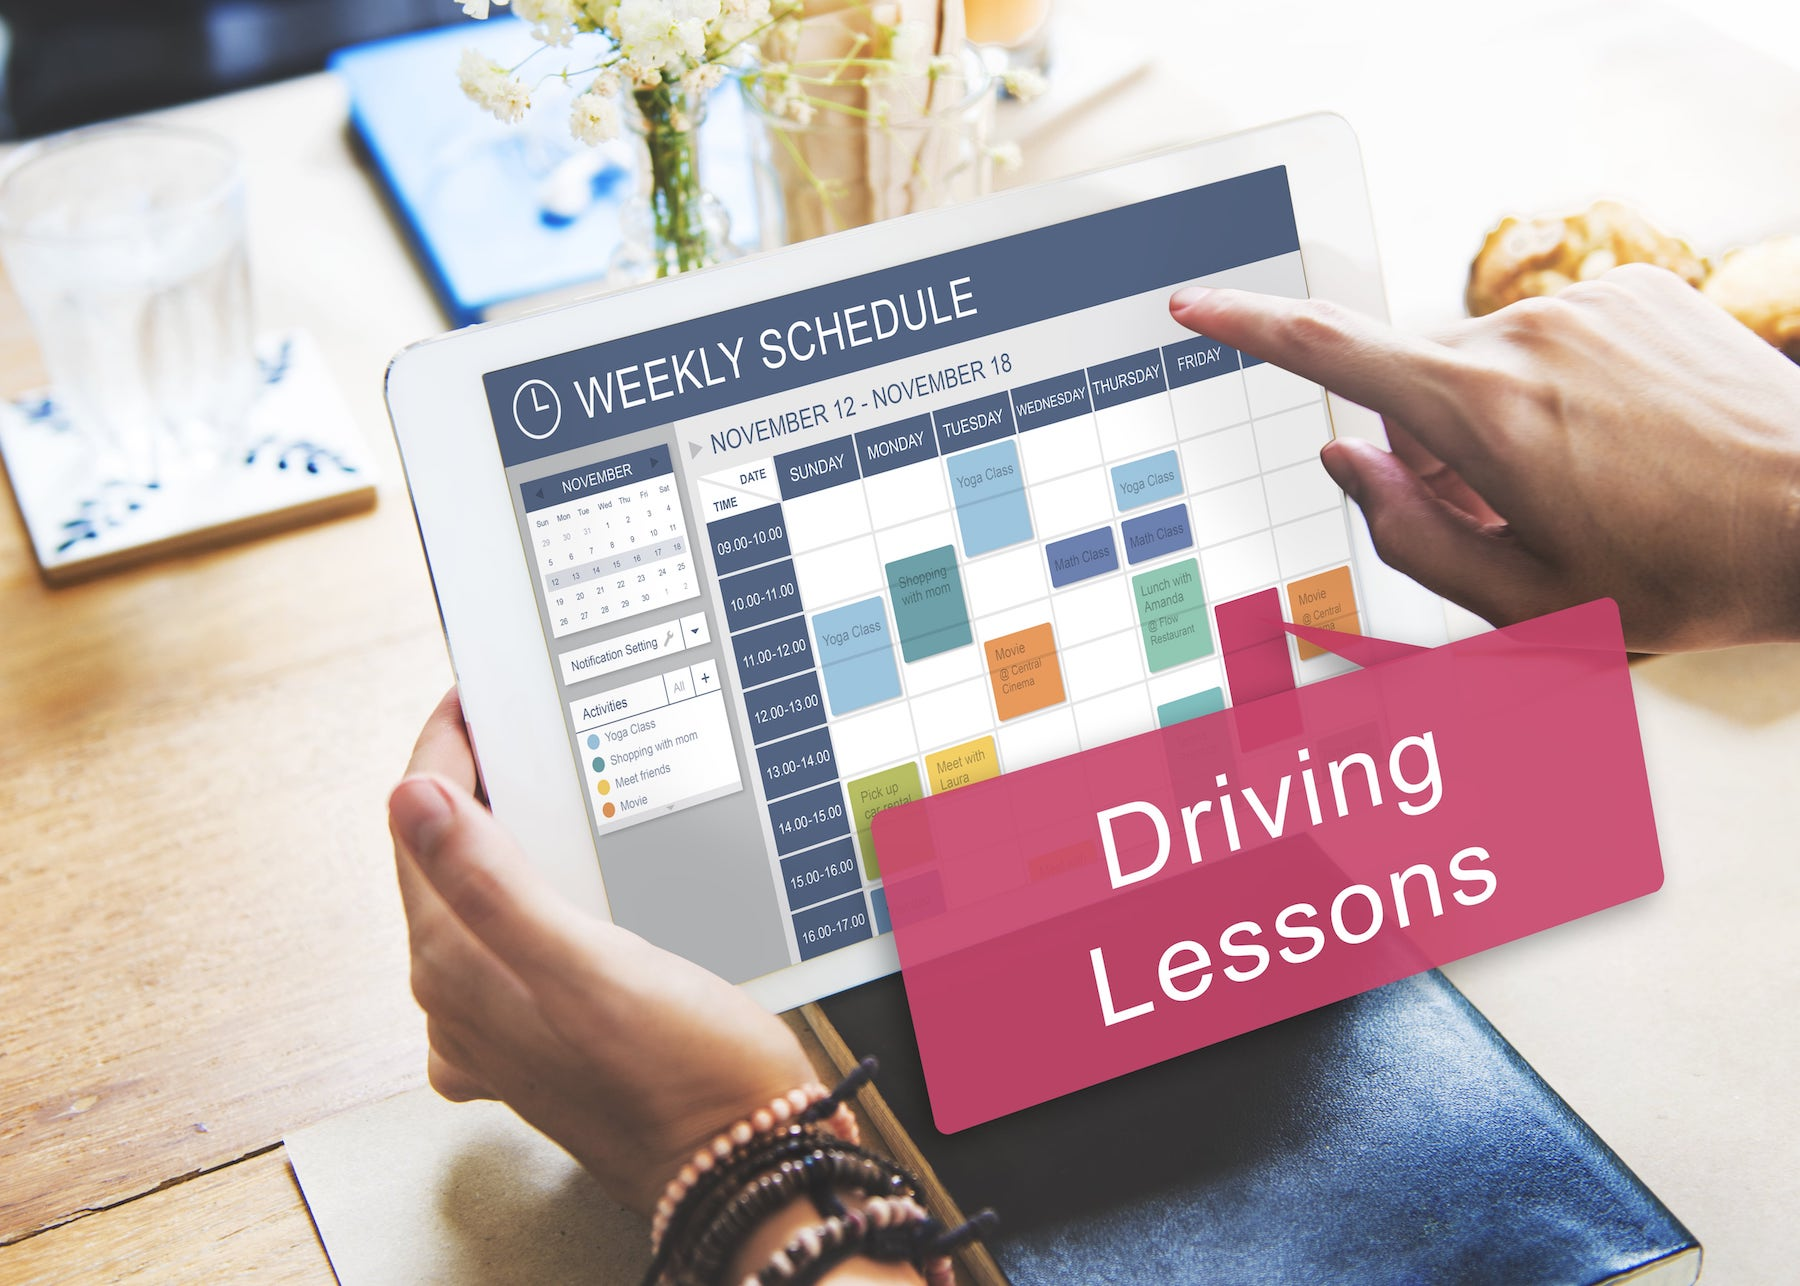 Driving lesson offers